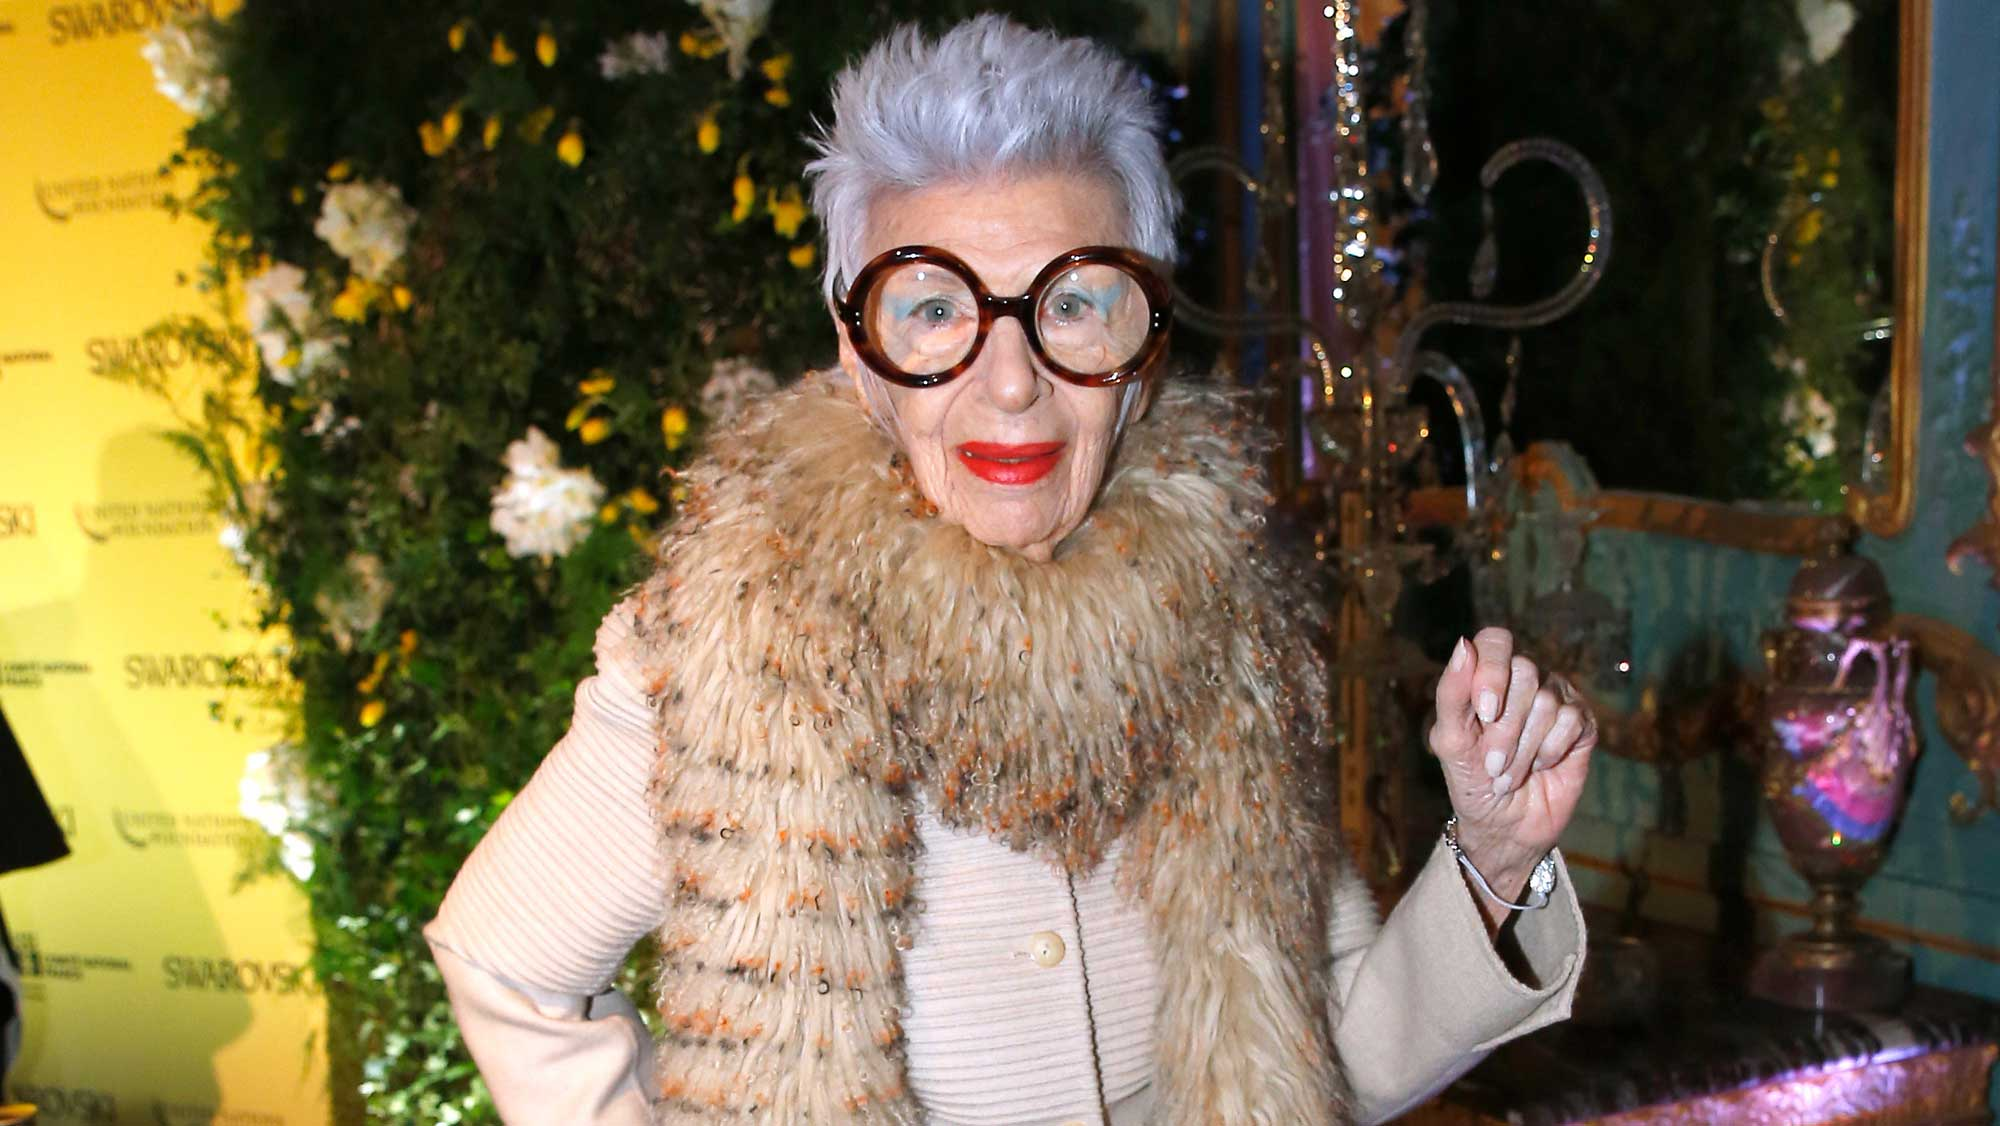 Iris Apfel attends an International Women's Day Luncheon in Paris, March 2016.